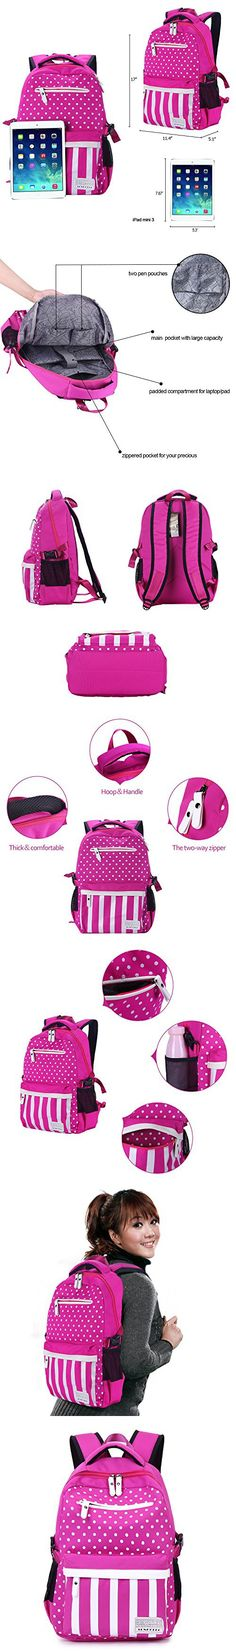 SUNPOLLO Girls Backpack School Bag Casual Backpack Cute Daypack Polka Dot Fashion Book Bag for Girls Women Canvas Rucksack Kids Primary Middle School Backpack(Fuchsia)